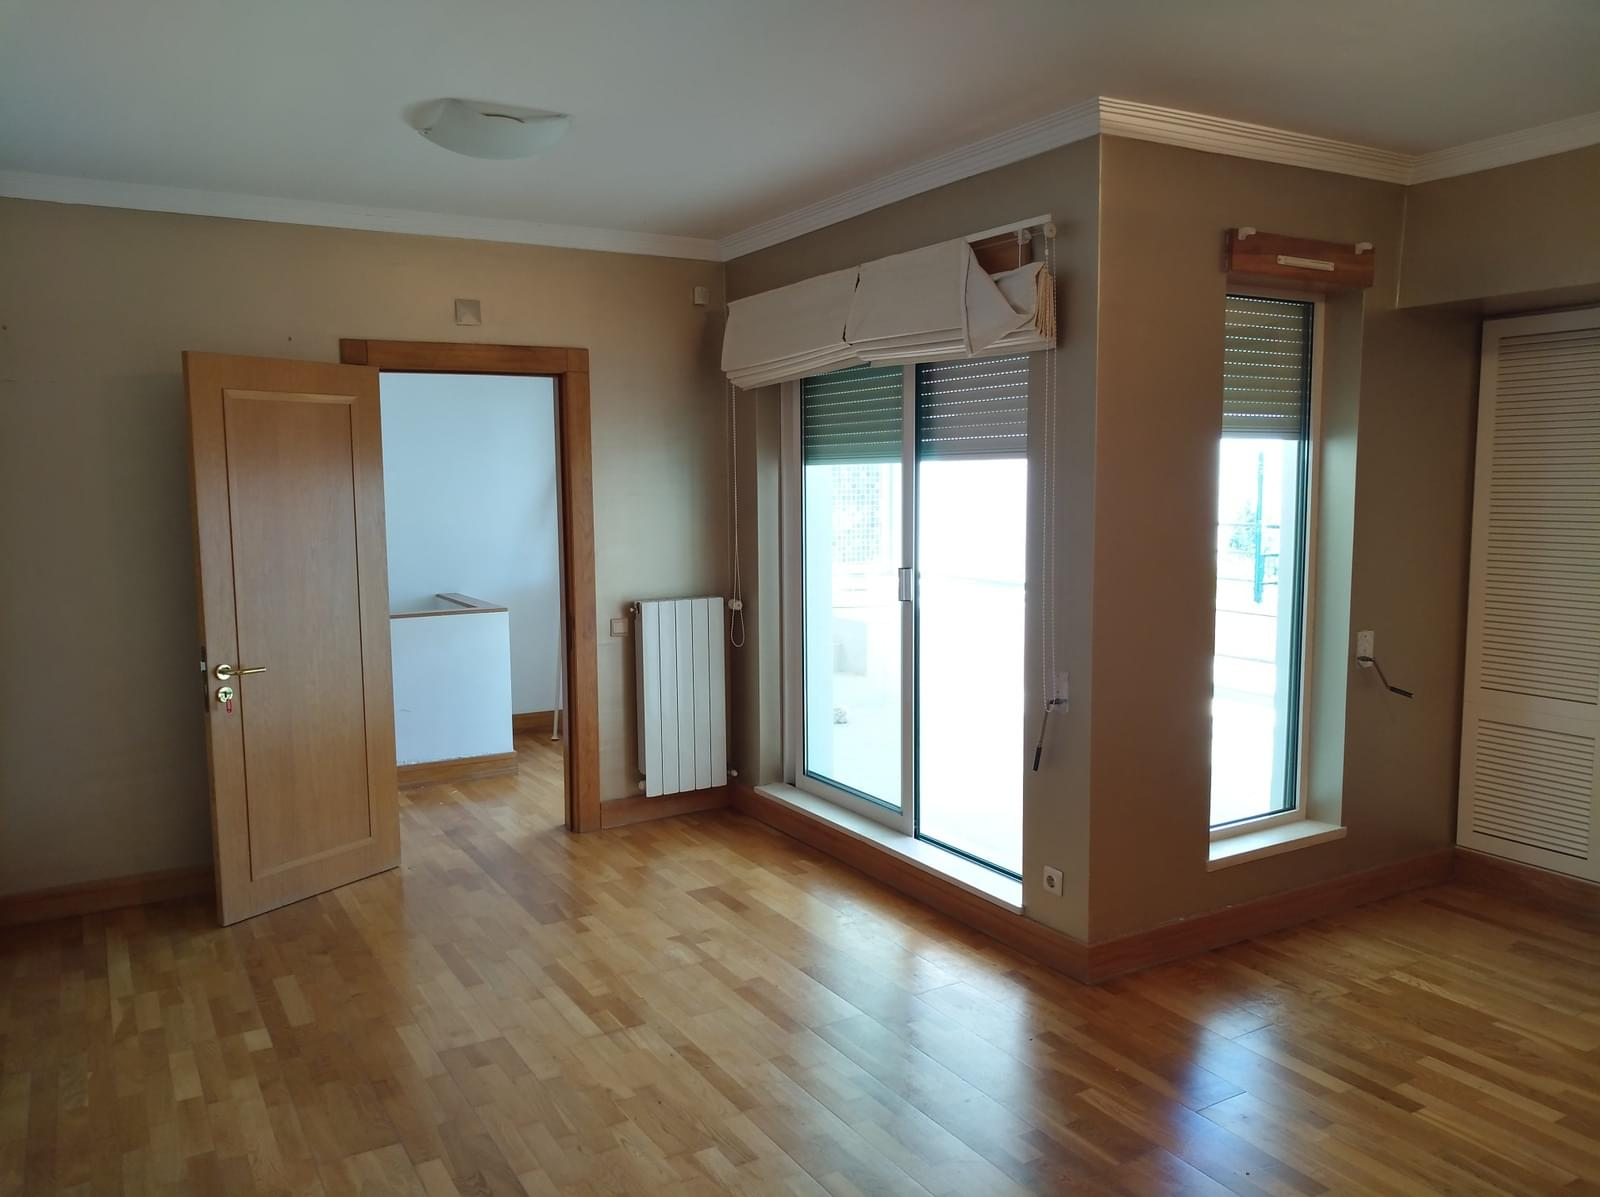 6 bedroom duplex with parking in gated community